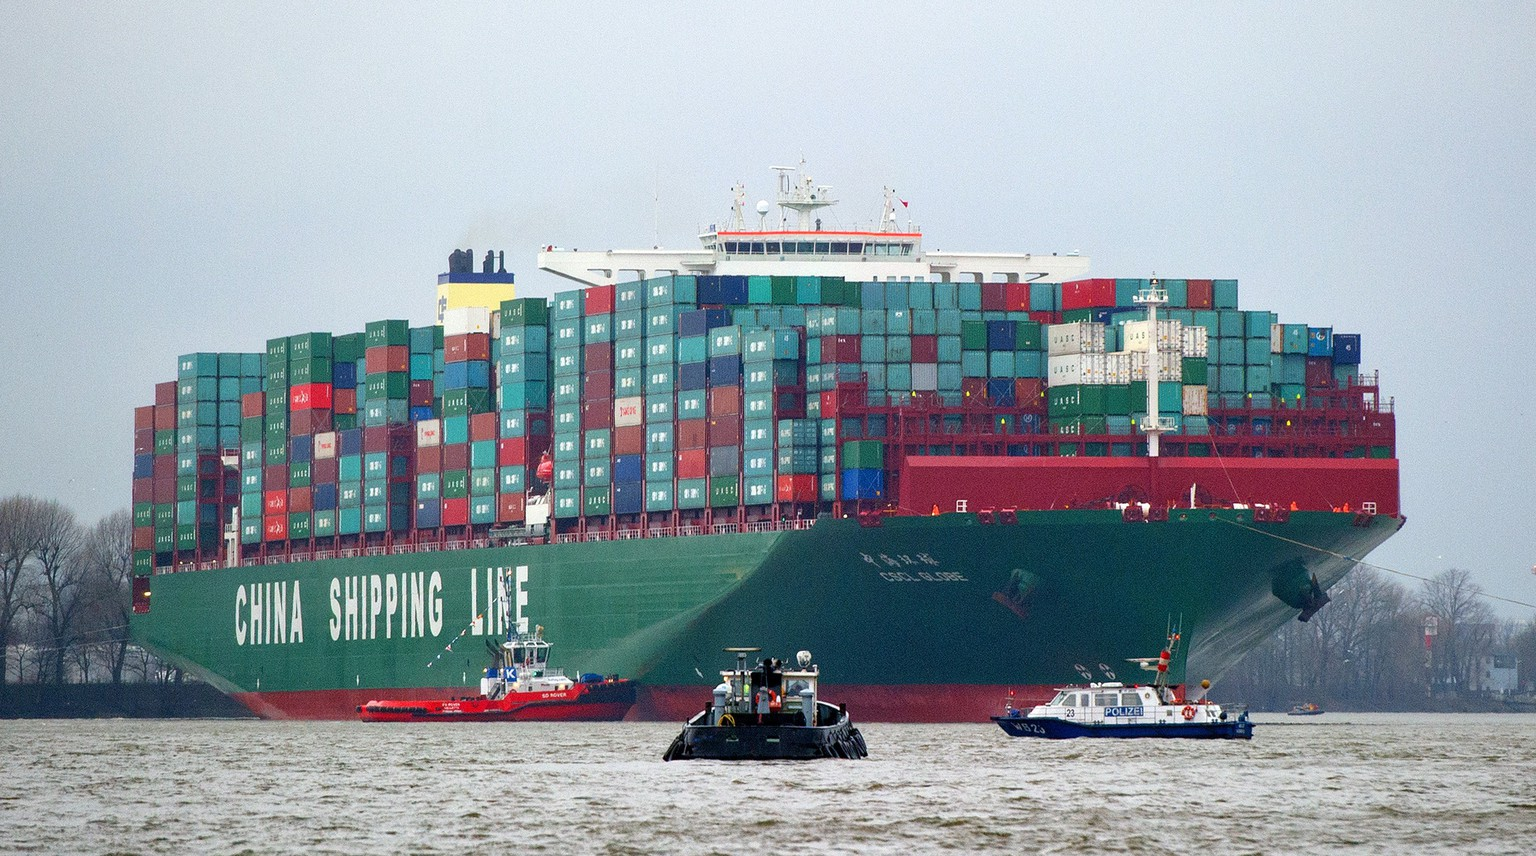 The cargo ship CSCL Globe of the China Shipping Group shipyard arrives at the port of Hamburg, northern Germany, during its maiden voyage on January 13, 2015. The vessel, that was launched in November 2014, can carry more than 19,000 containers and is the largest container ship in the World.            AFP PHOTO / DPA / DANIEL BOCKWOLDT +++ GERMANY OUT